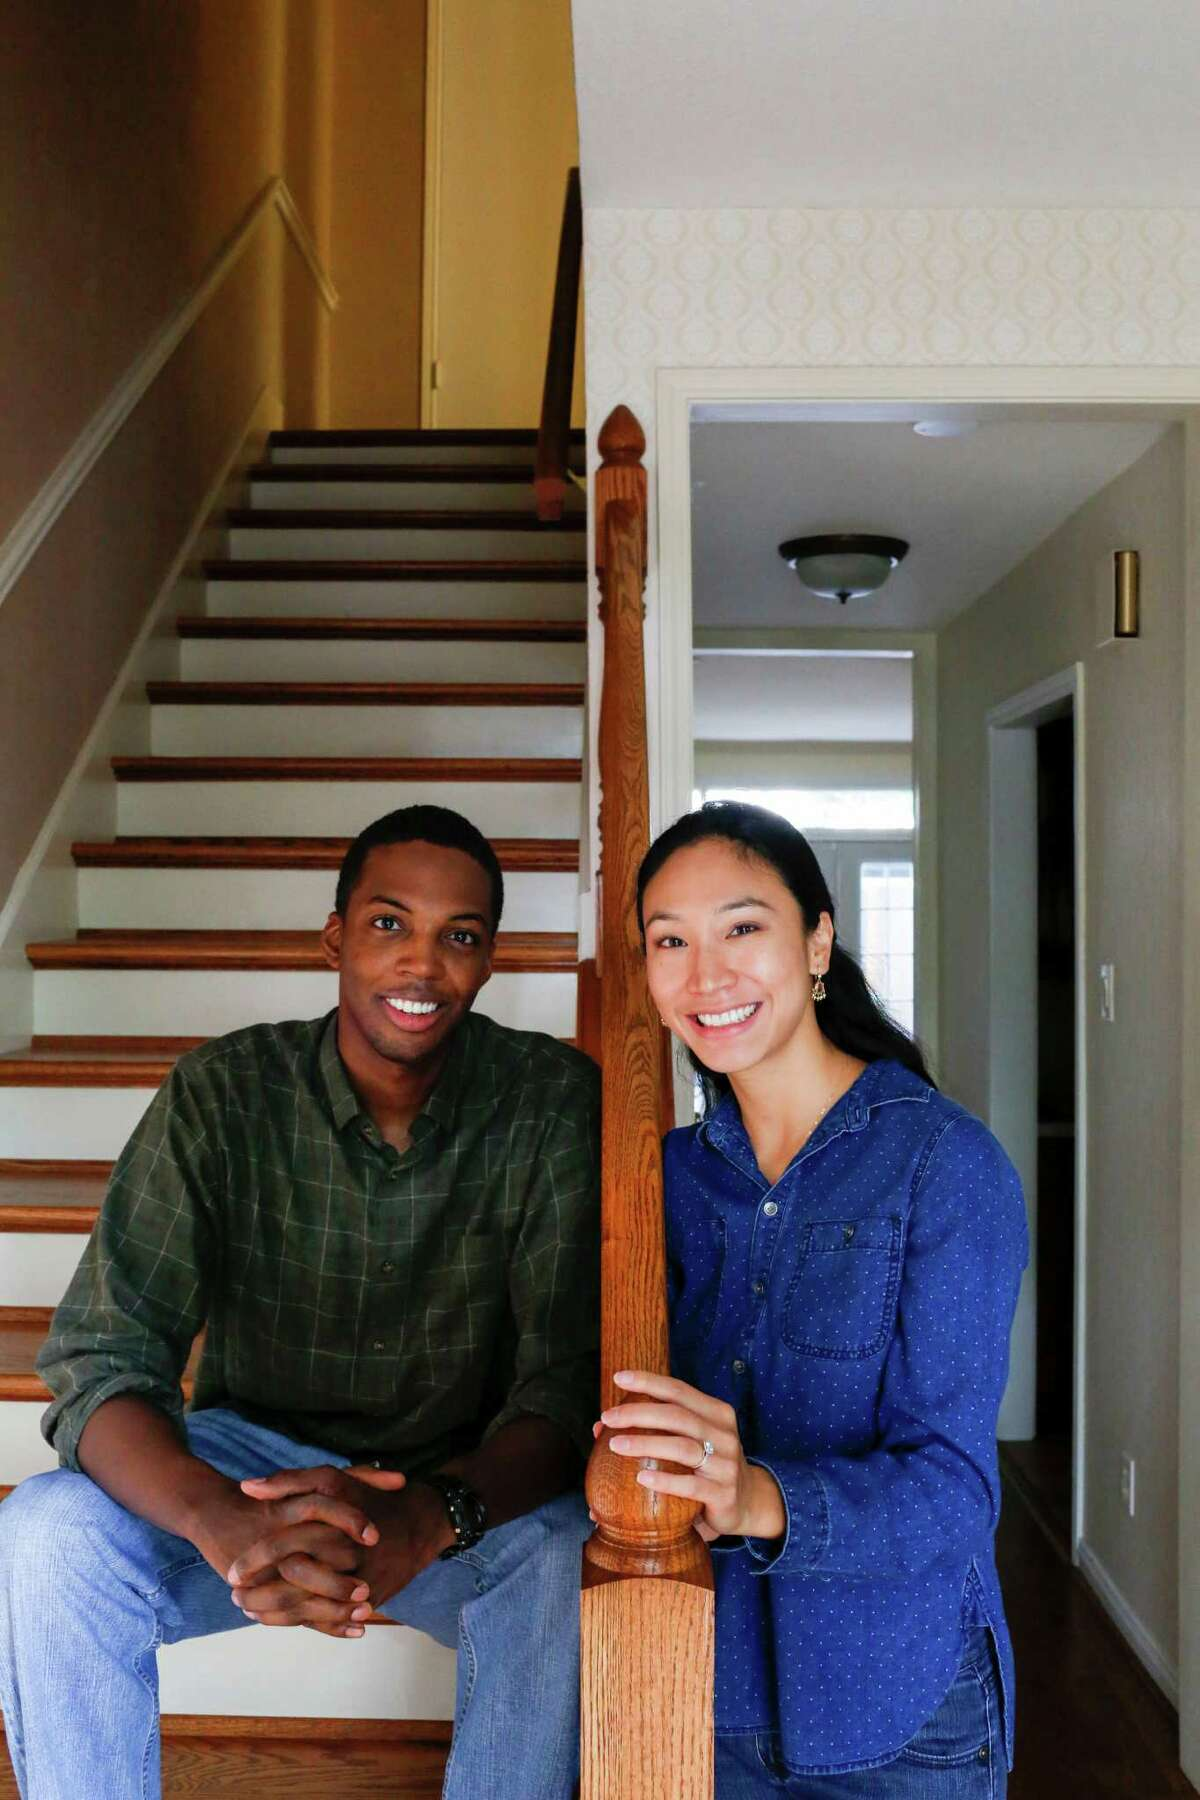 Newlyweds Esther and Brandon Hendricks in their town home June 28, 2014 in Houston.